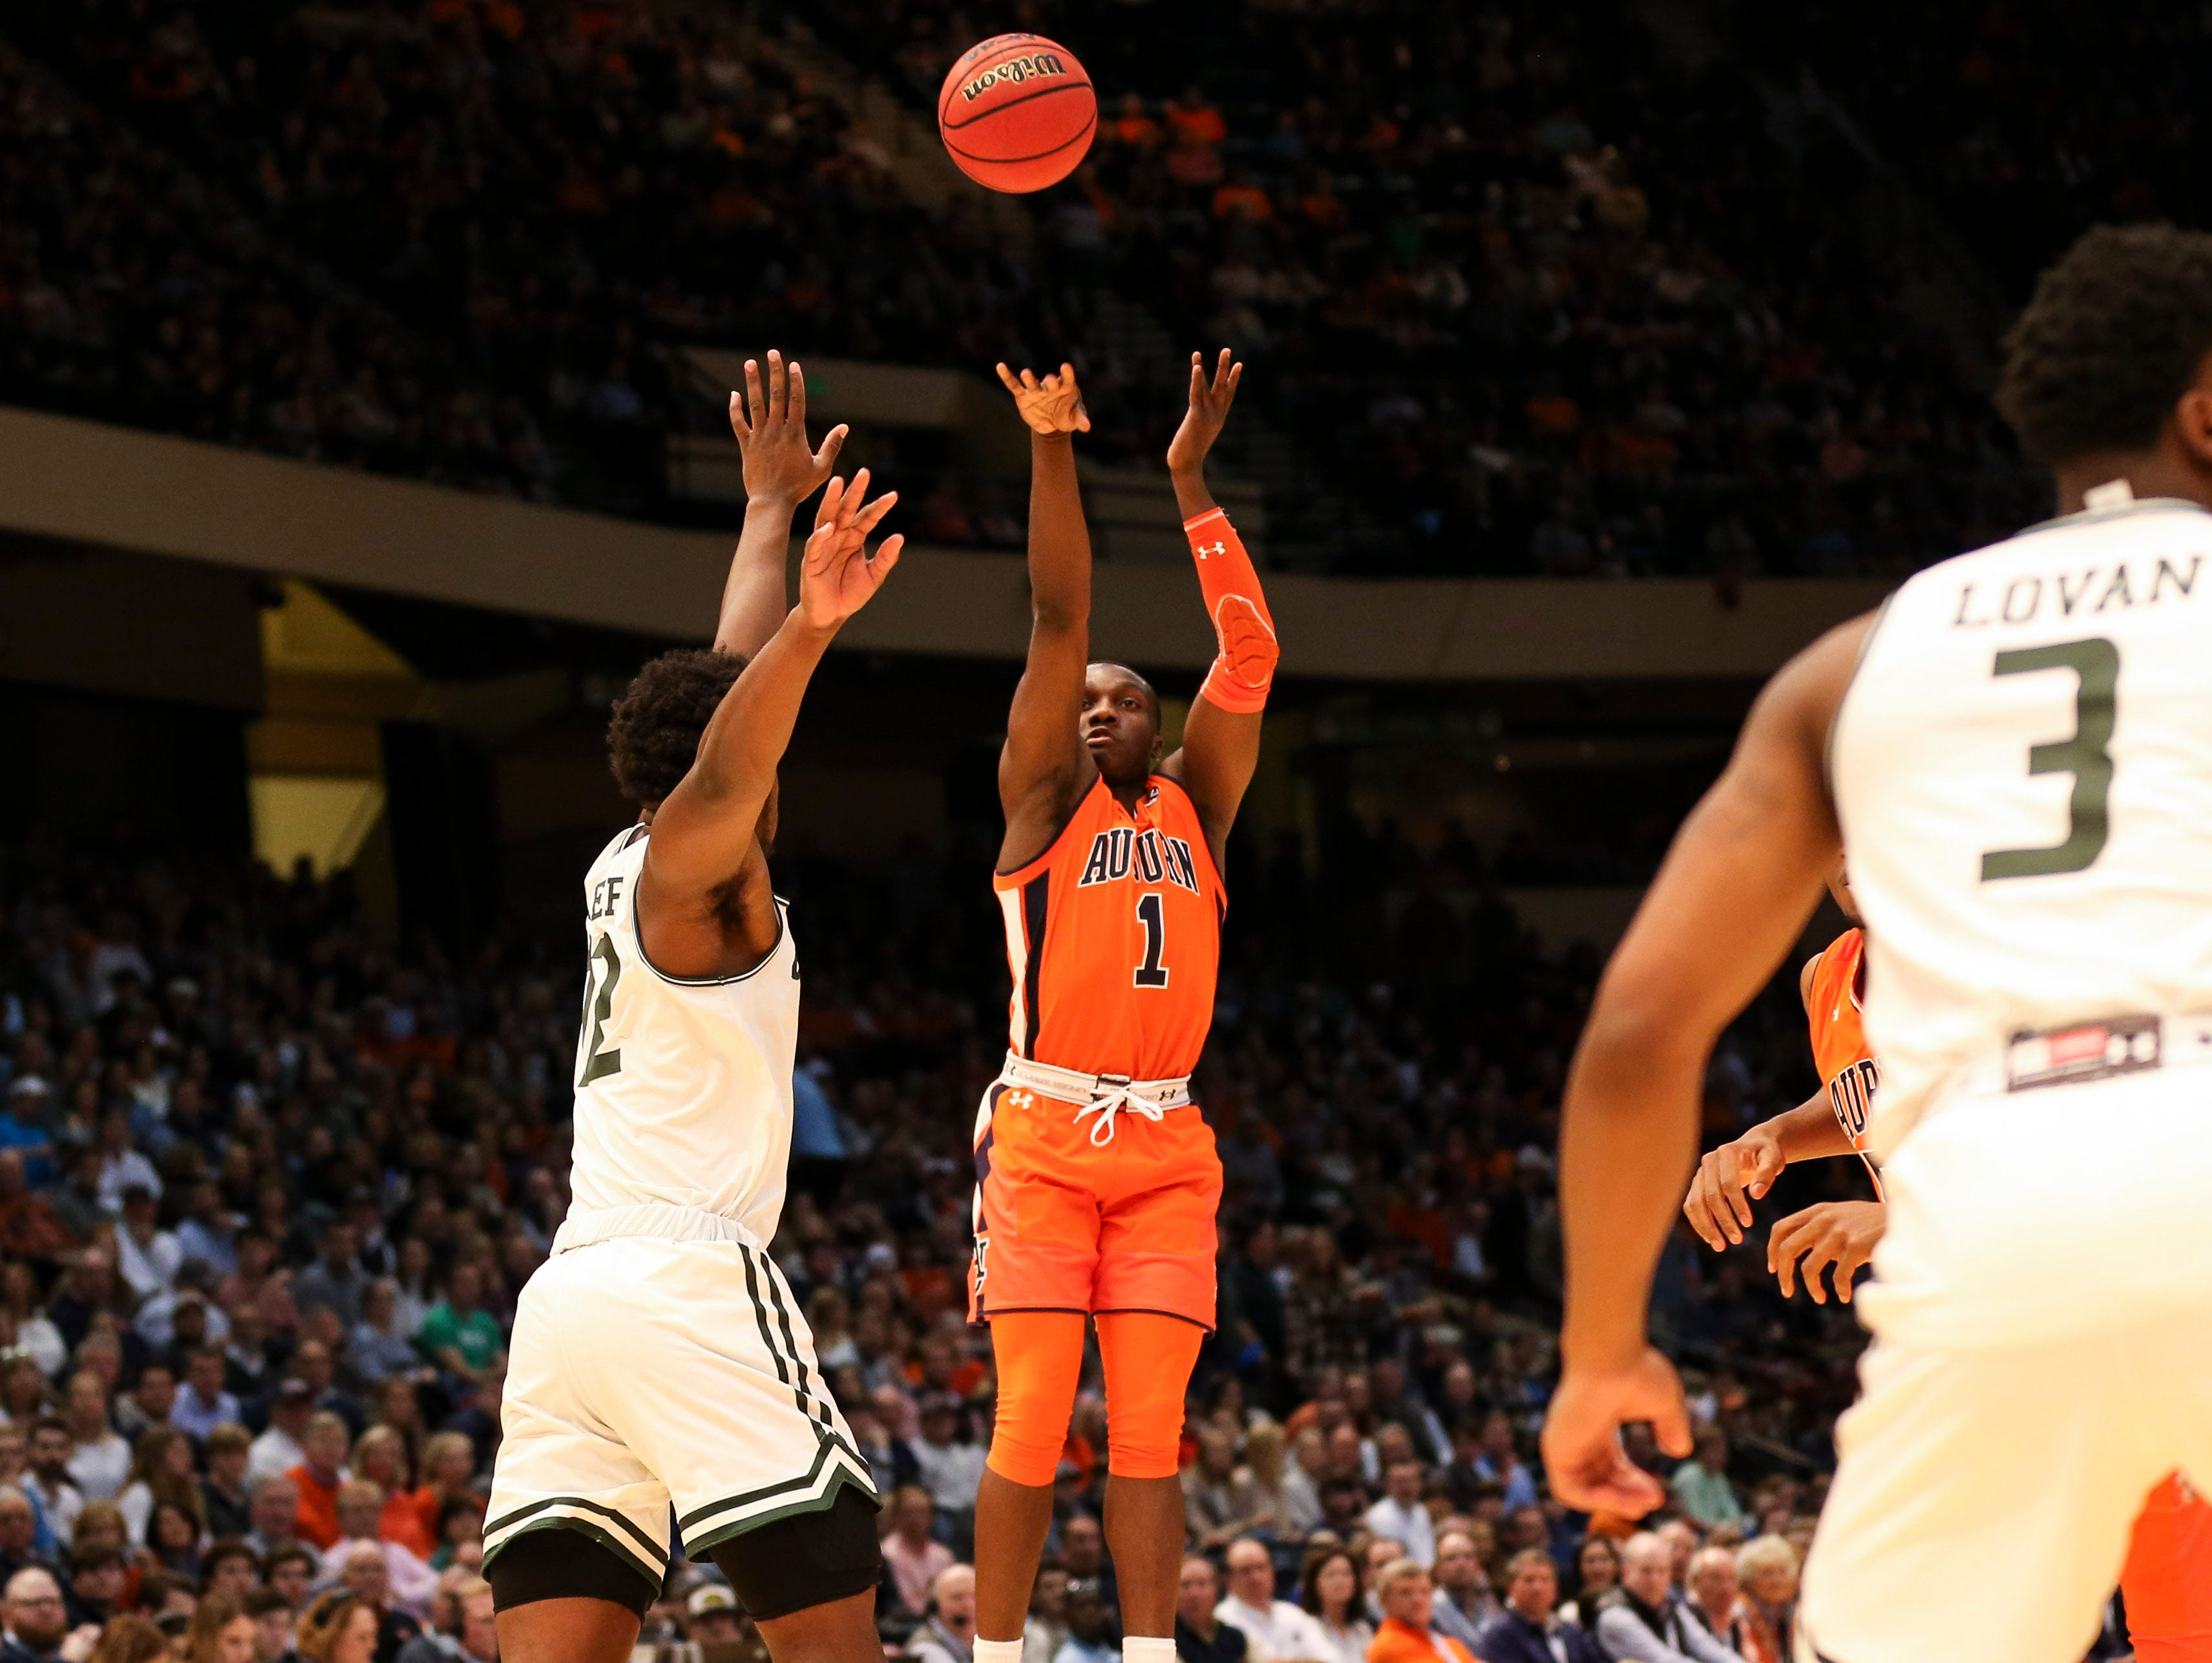 Auburn guard Jared Harper (1) shoots against UAB during the Mike Slive Invitational on Saturday, Dec. 15, 2018, in Birmingham, Ala.